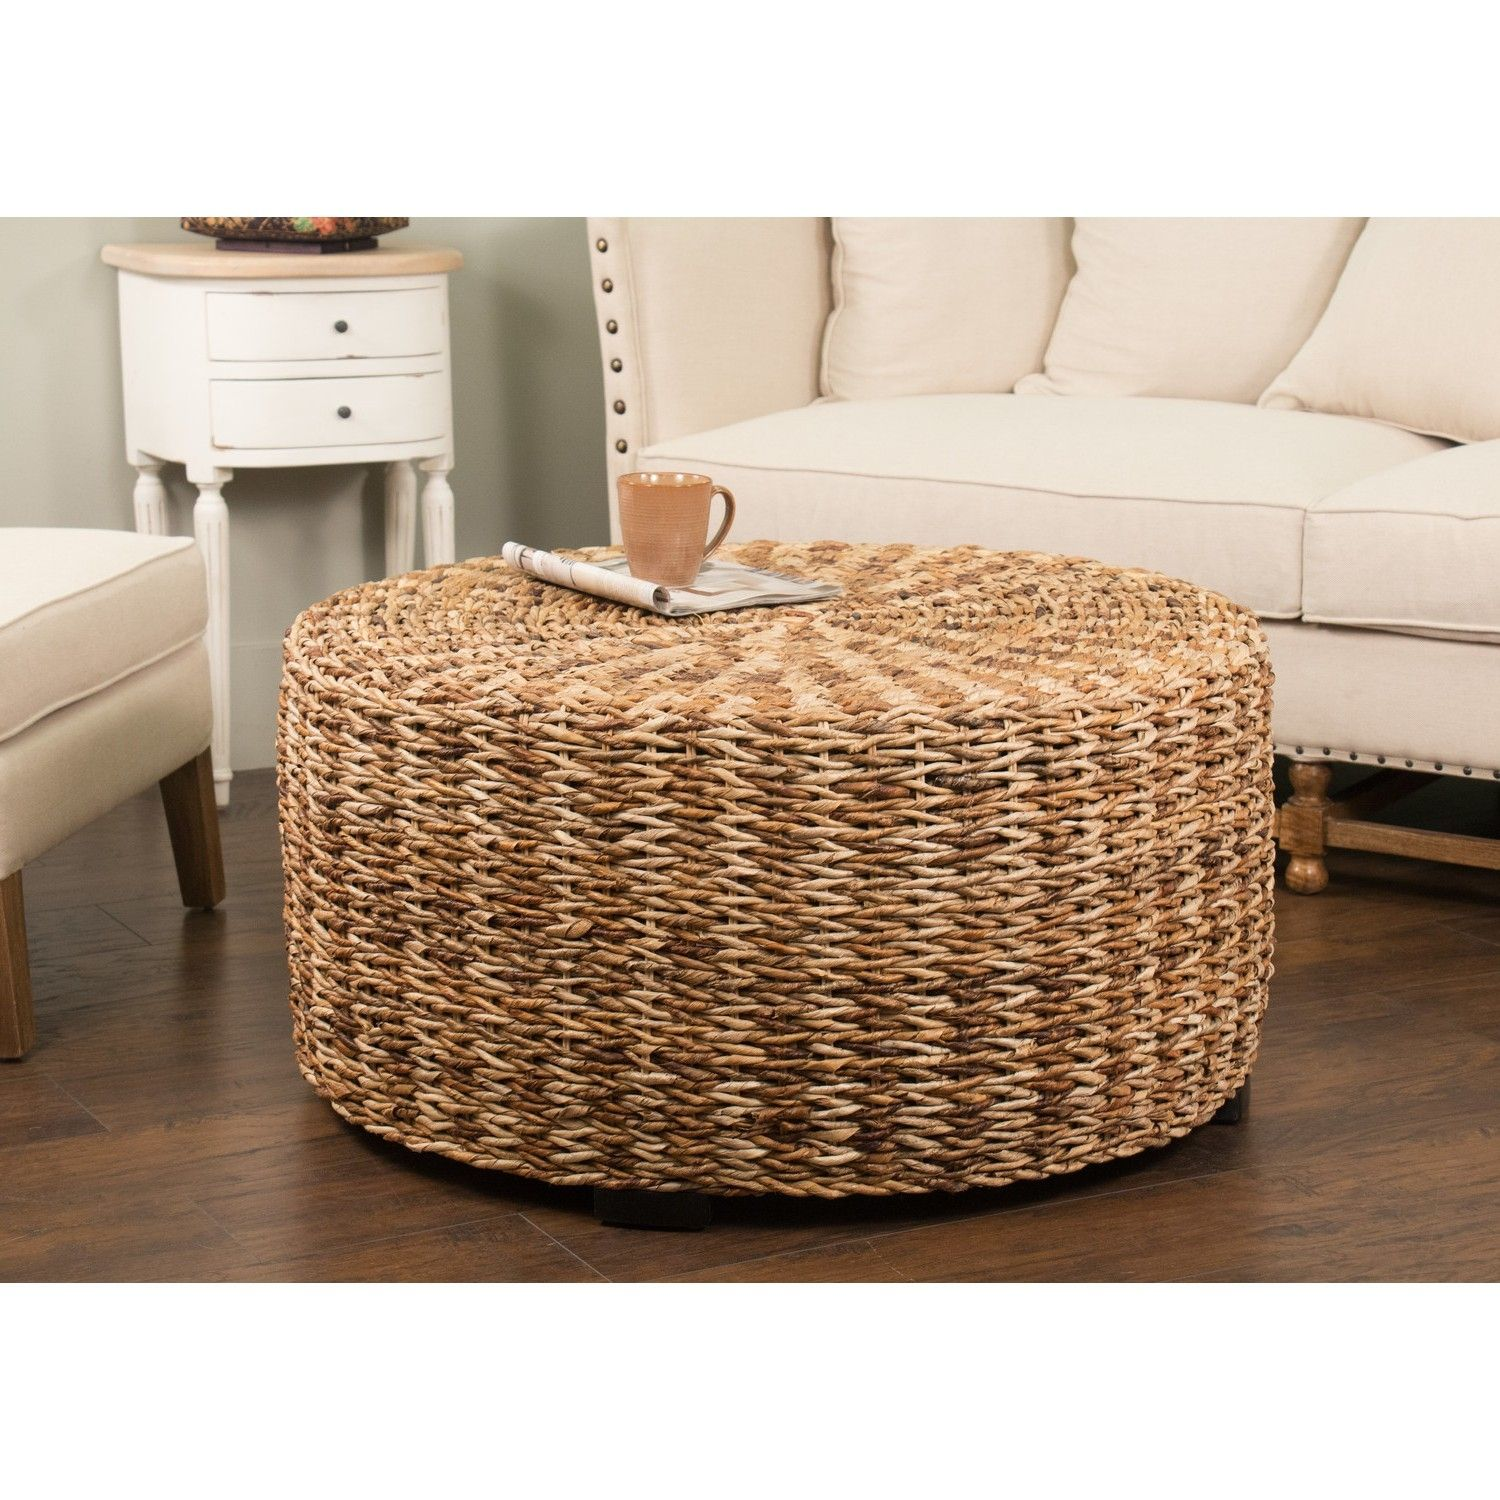 Riau Round Woven Abaca Coffee Table Look Here Coffee Tables Ideas For Dimensions 937 X 937 Riau R Drum Coffee Table Footstool Coffee Table Ottoman Coffee Table [ 1500 x 1500 Pixel ]